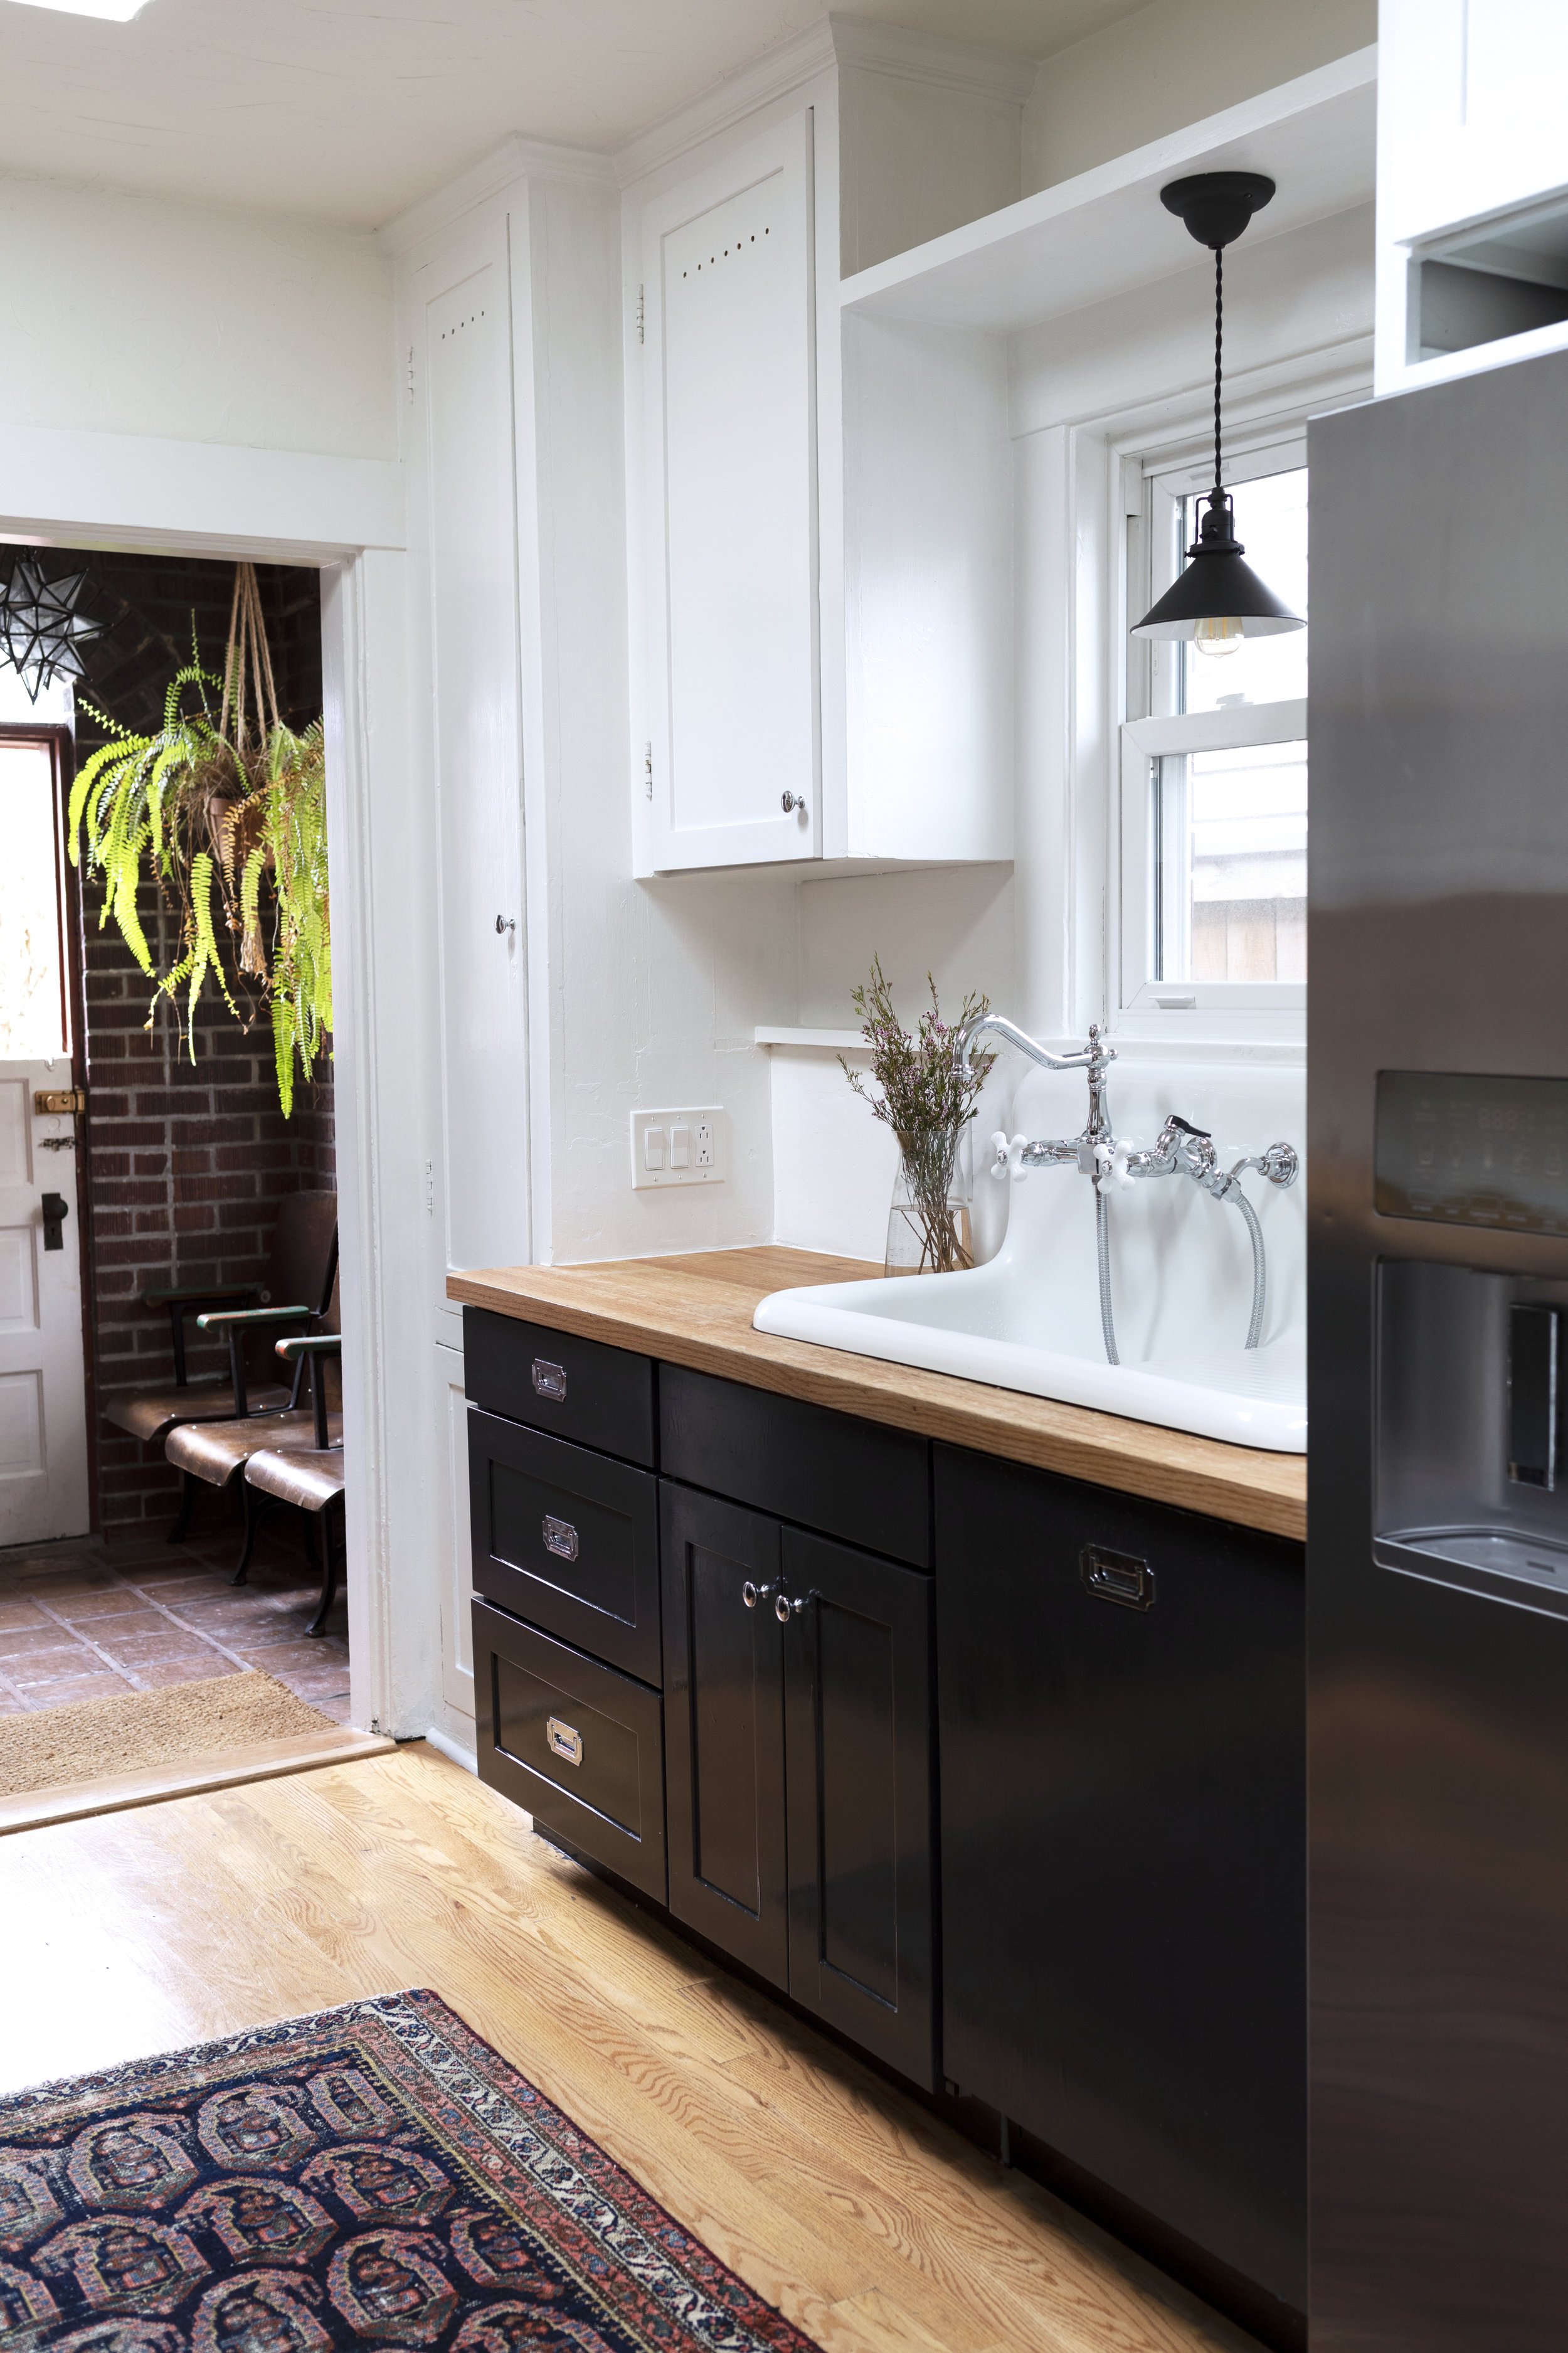 Diy How To Add A New Door To An Old Cabinet Box The Grit And Polish